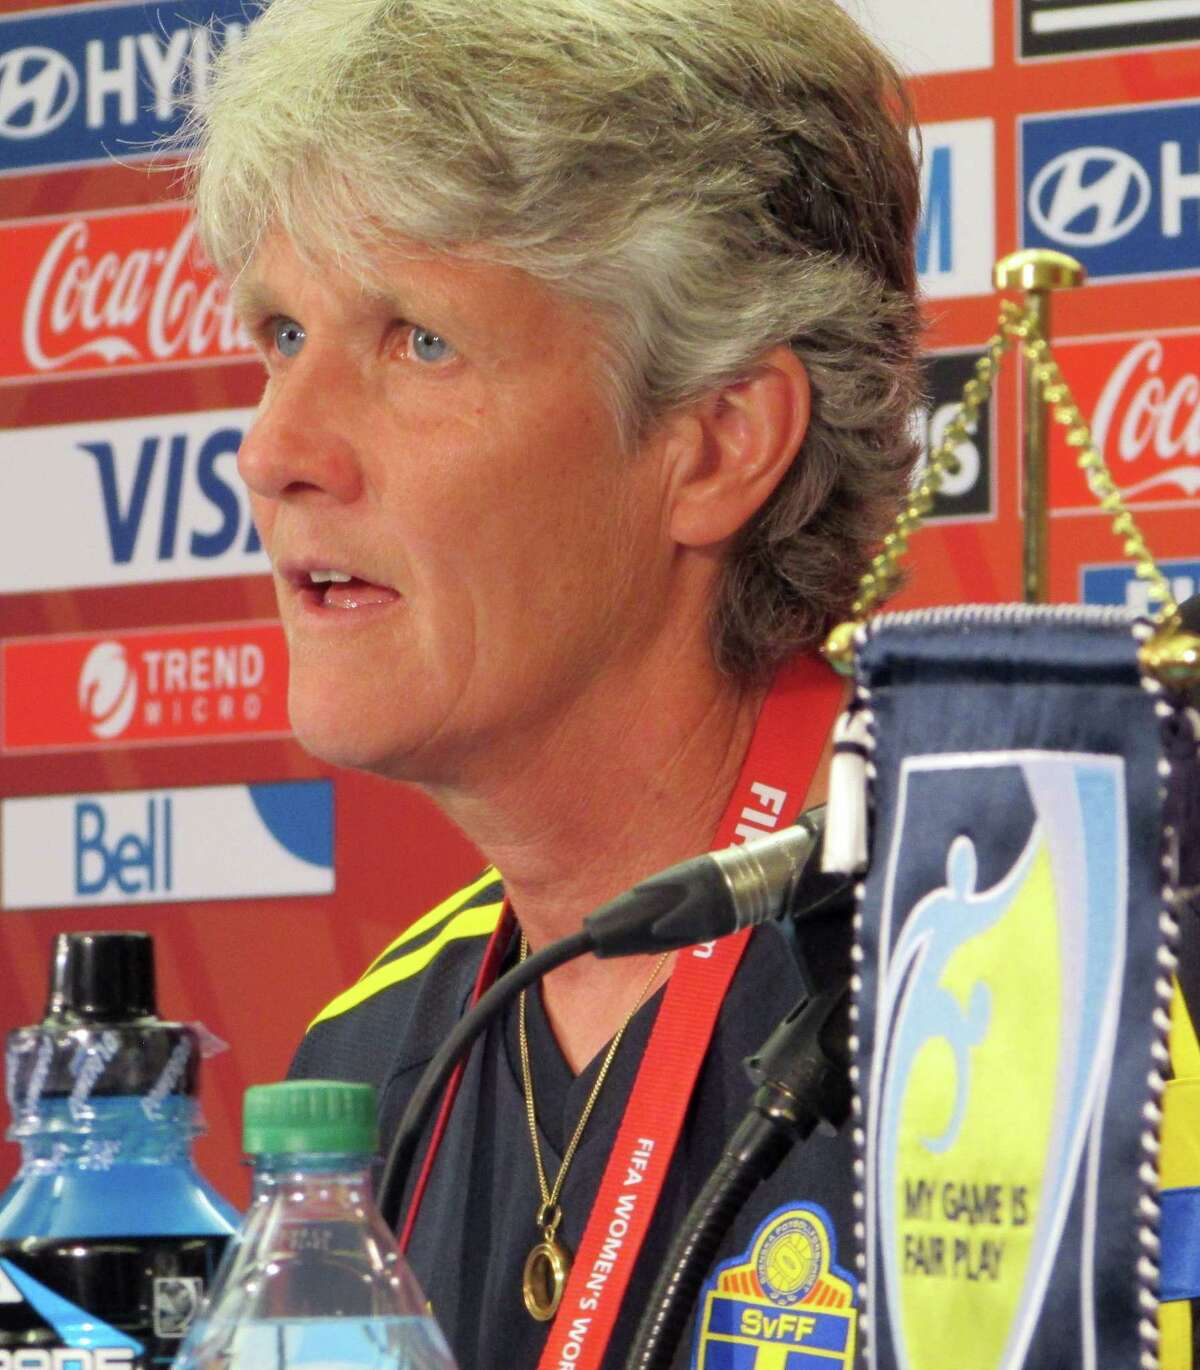 Sweden coach Pia Sundhage speaks during a news conference at the FIFA Women's World Cup on Thursday in Winnipeg, Manitoba. Sundhage will coach against her old team, the United States, when they play in a first-round match.